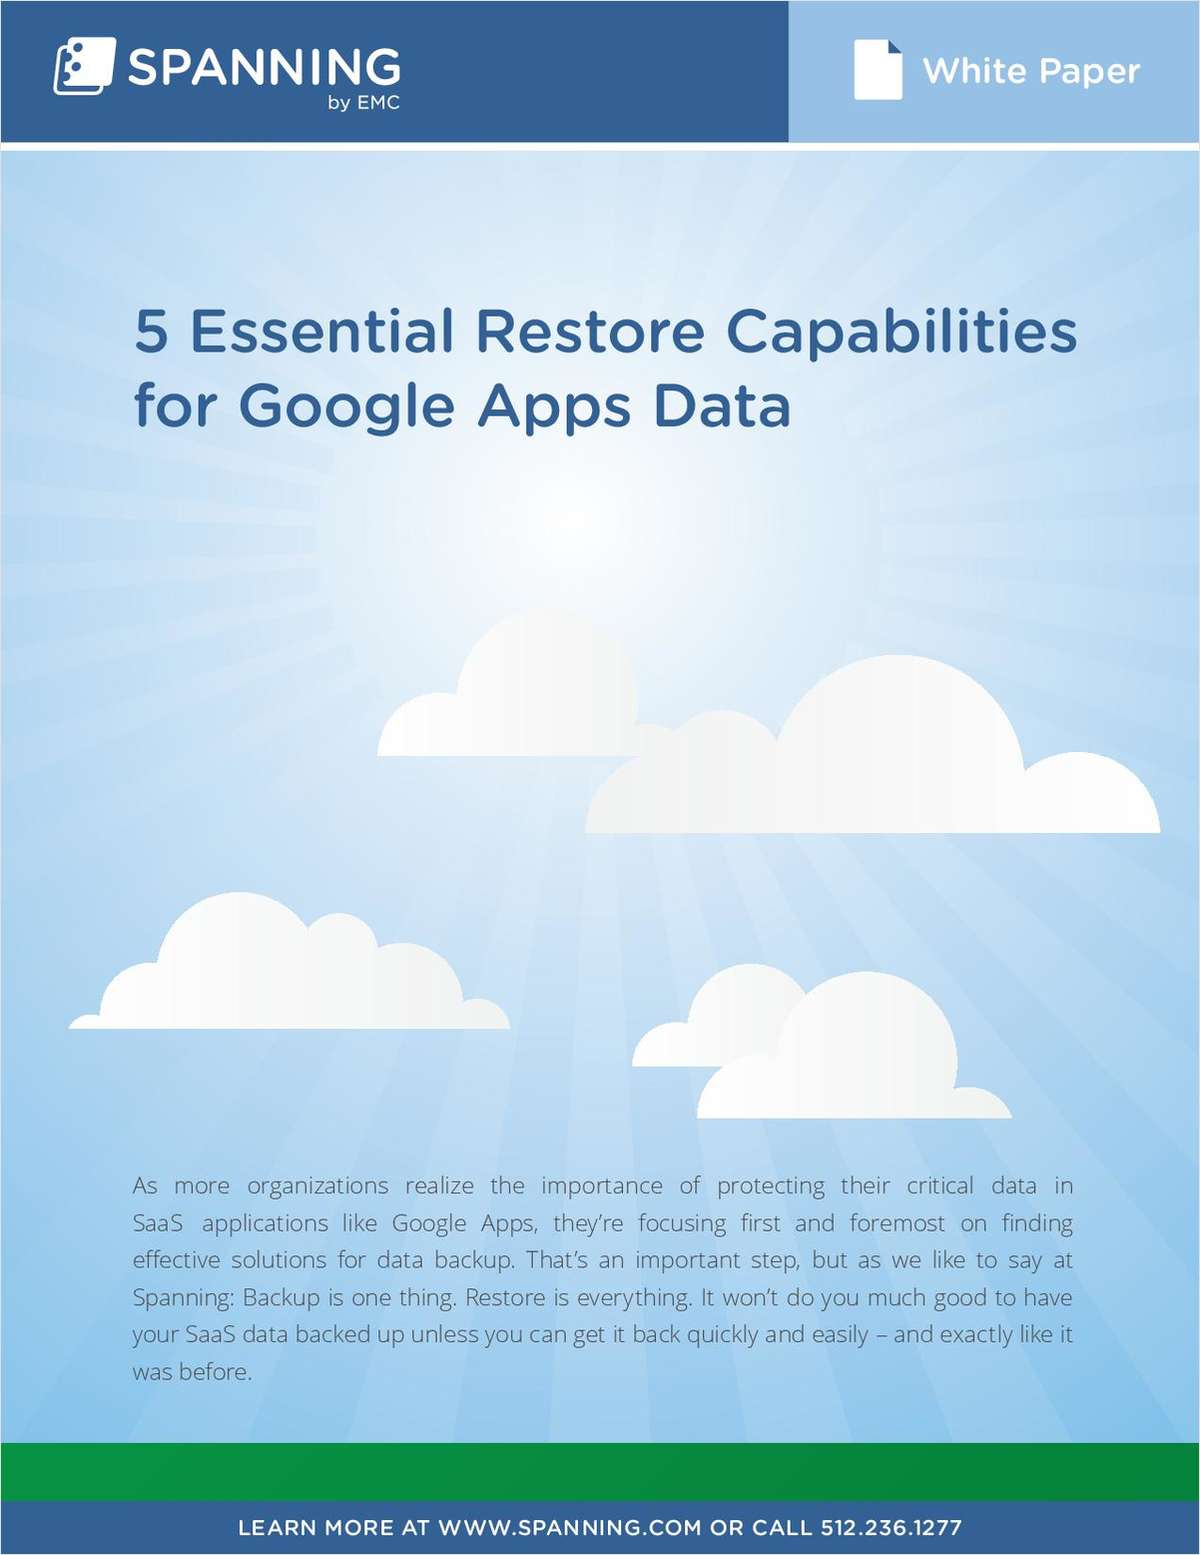 5 Essential Restore Capabilities for Google Apps Backup